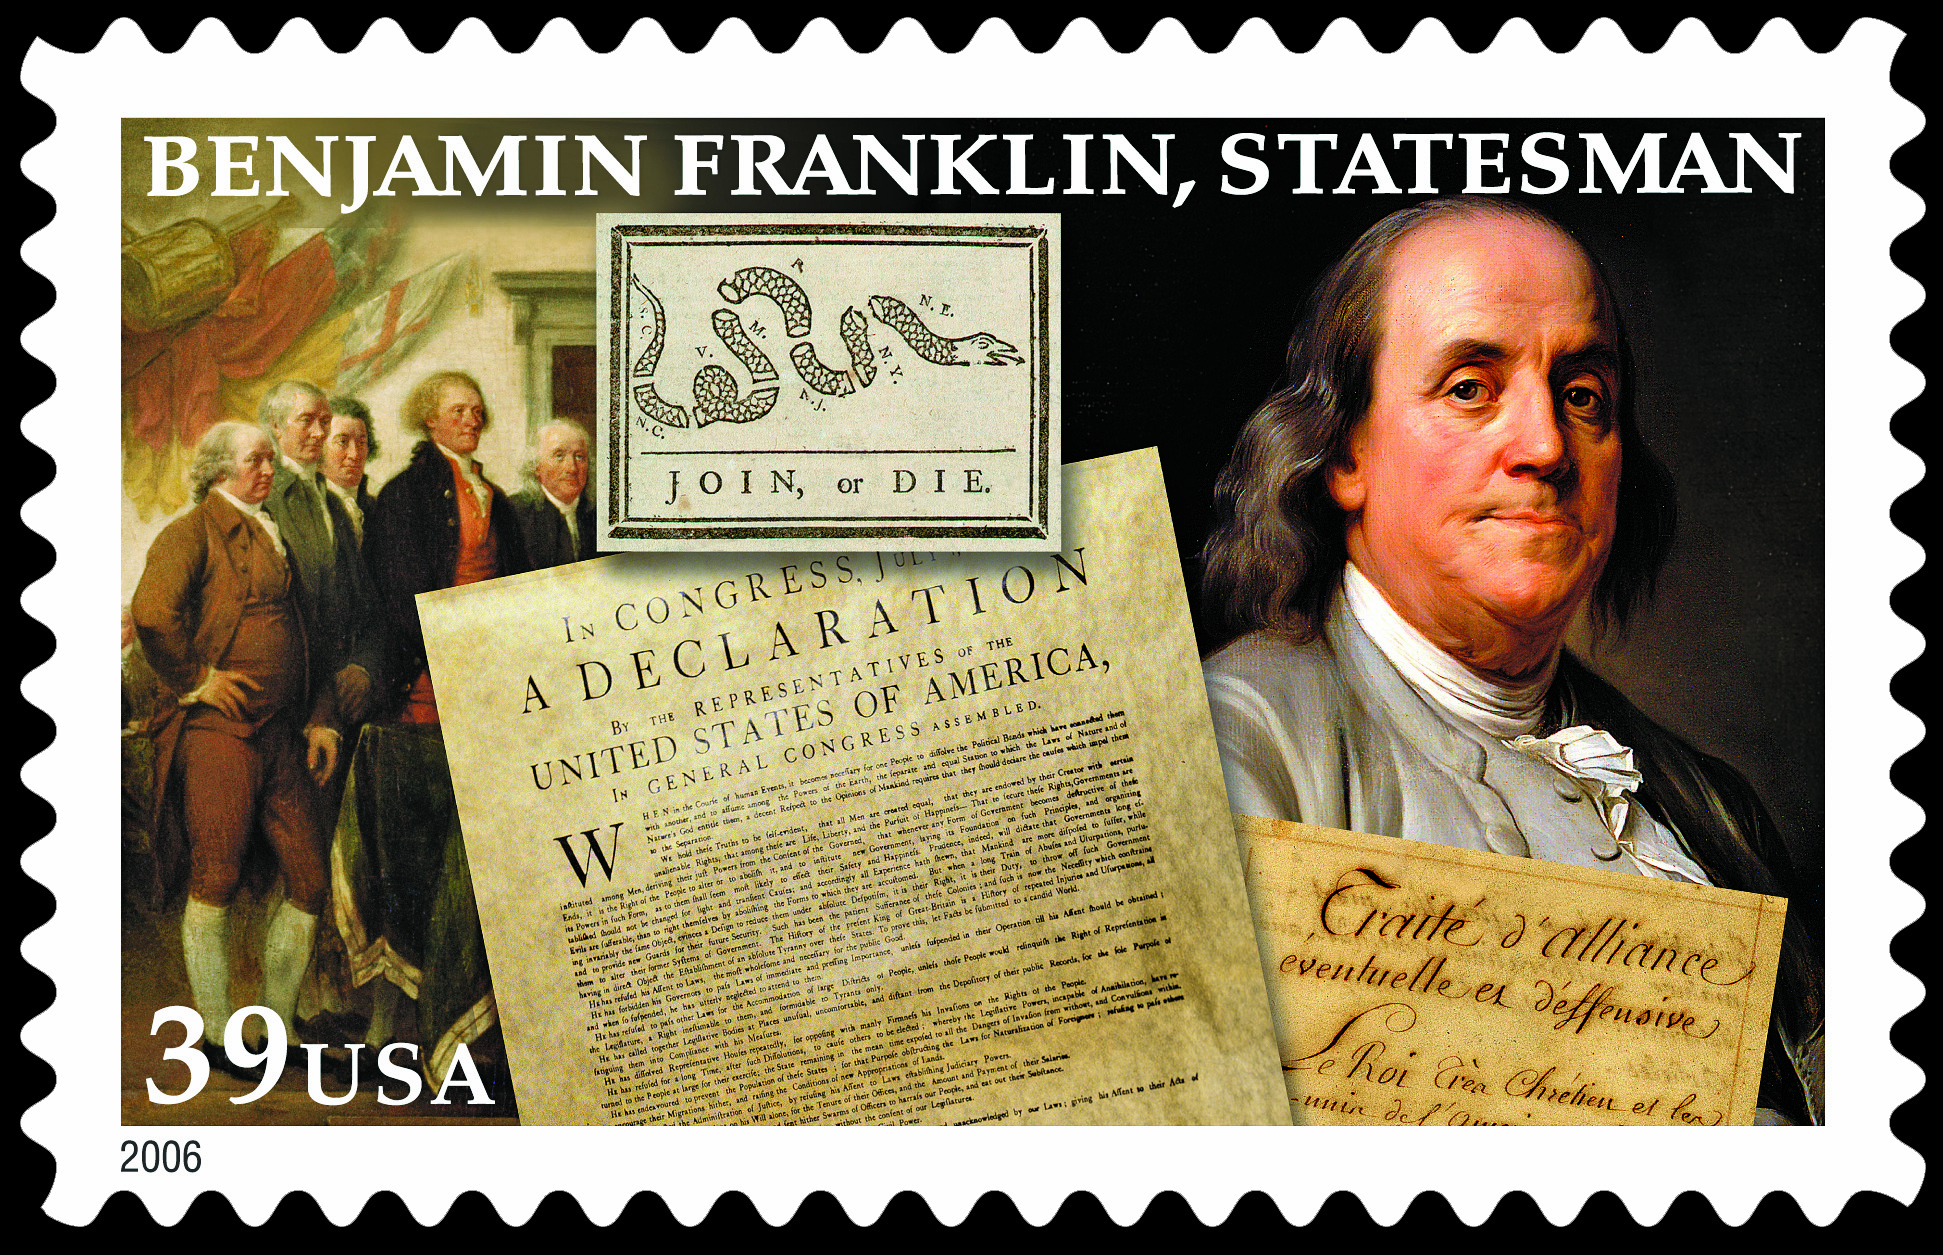 a description of benjamin franklin one of the most influential figures in american history Benjamin franklin (1706-1790) author oprah winfrey launched an influential chat show which became one of the most watched tv shows periods in american history.